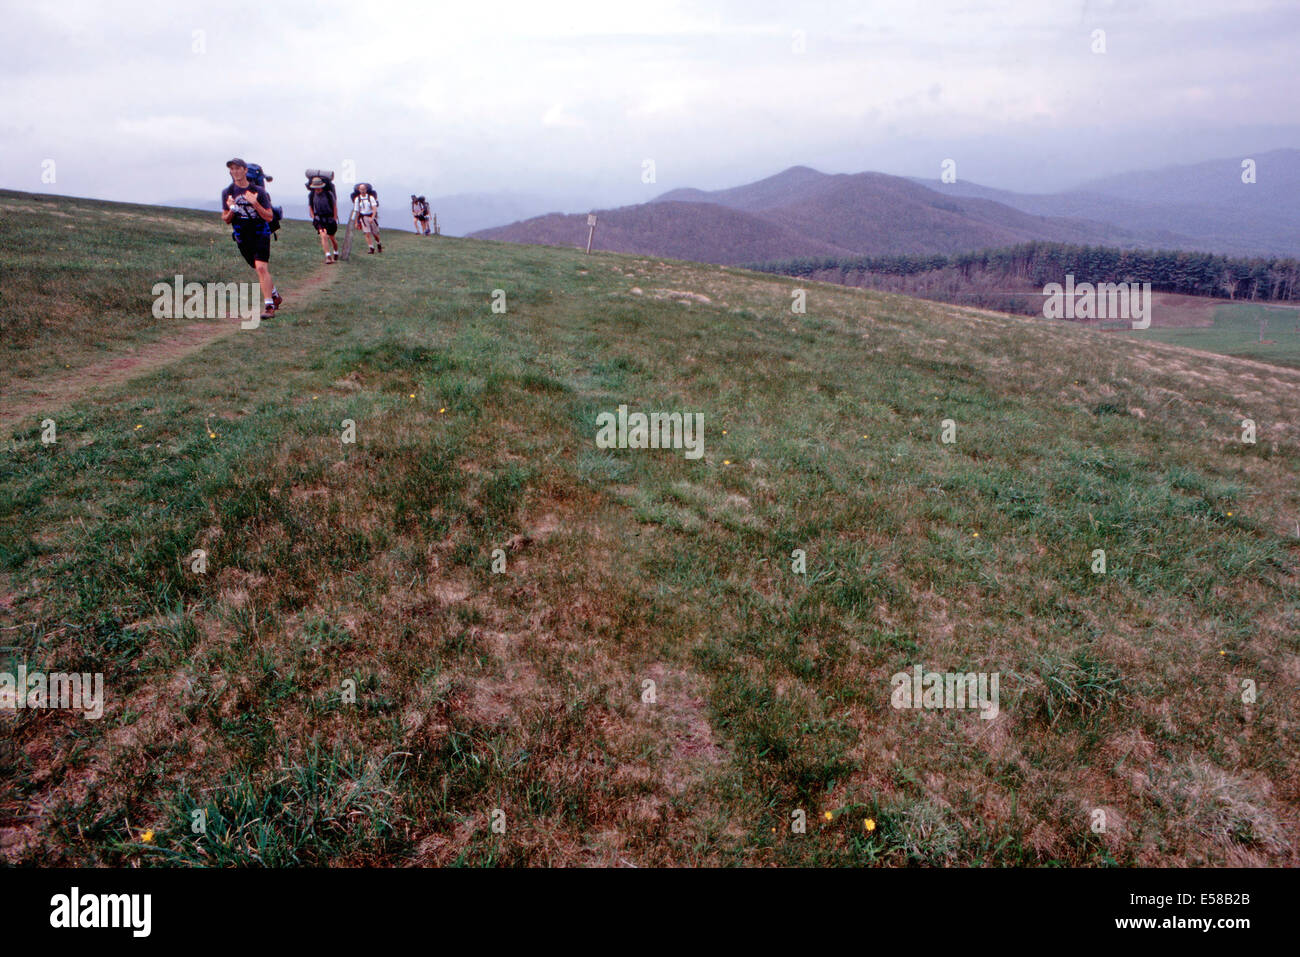 Hikers on The Appalachian Trail crossing the Max Patch bald,North Carolina - Stock Image